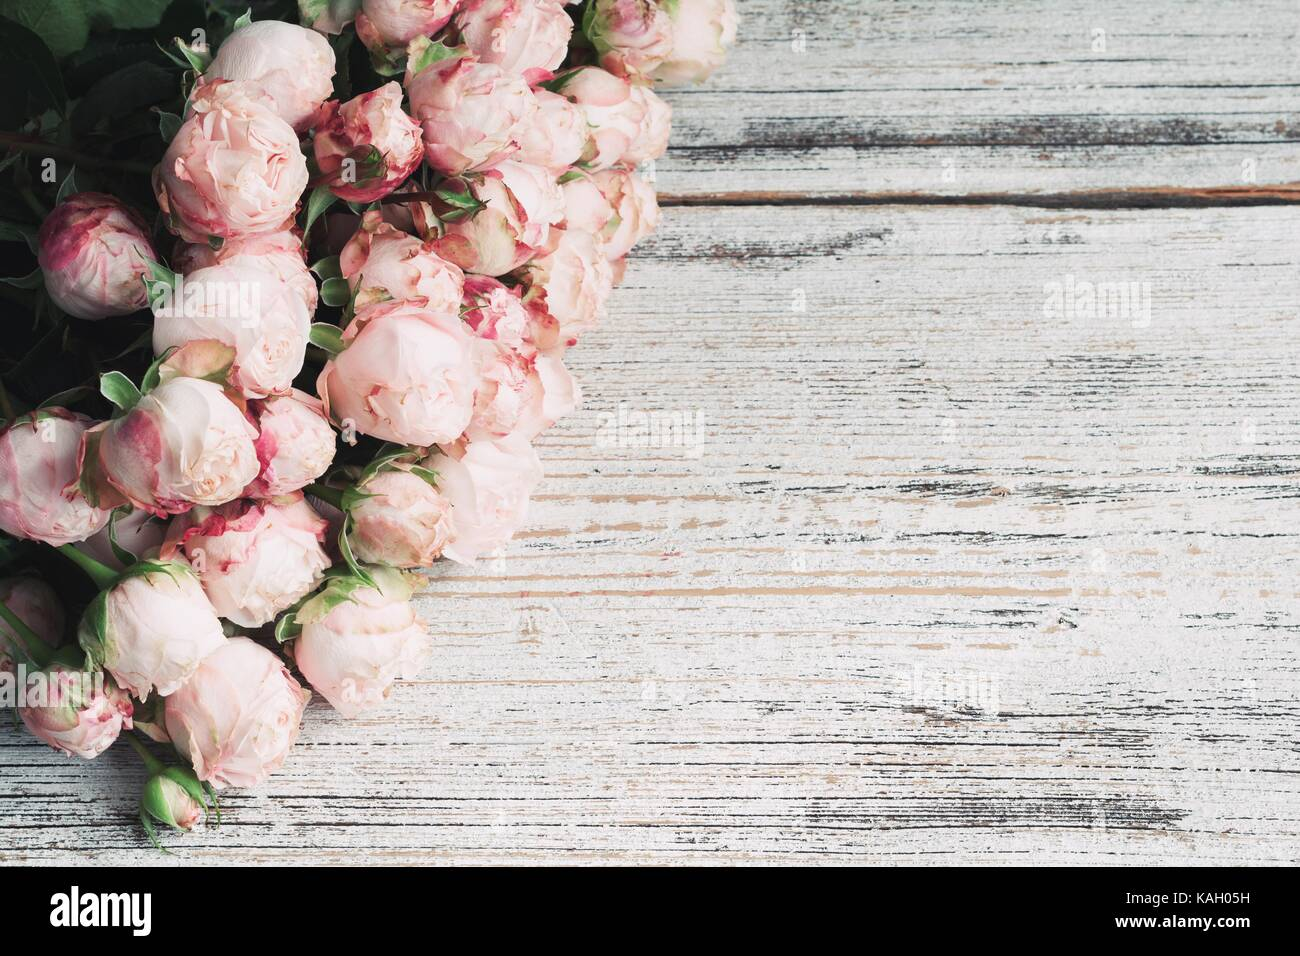 vintage wedding background high resolution stock photography and images alamy https www alamy com stock image pink roses on vintage wooden background floral frame background wedding 161413213 html